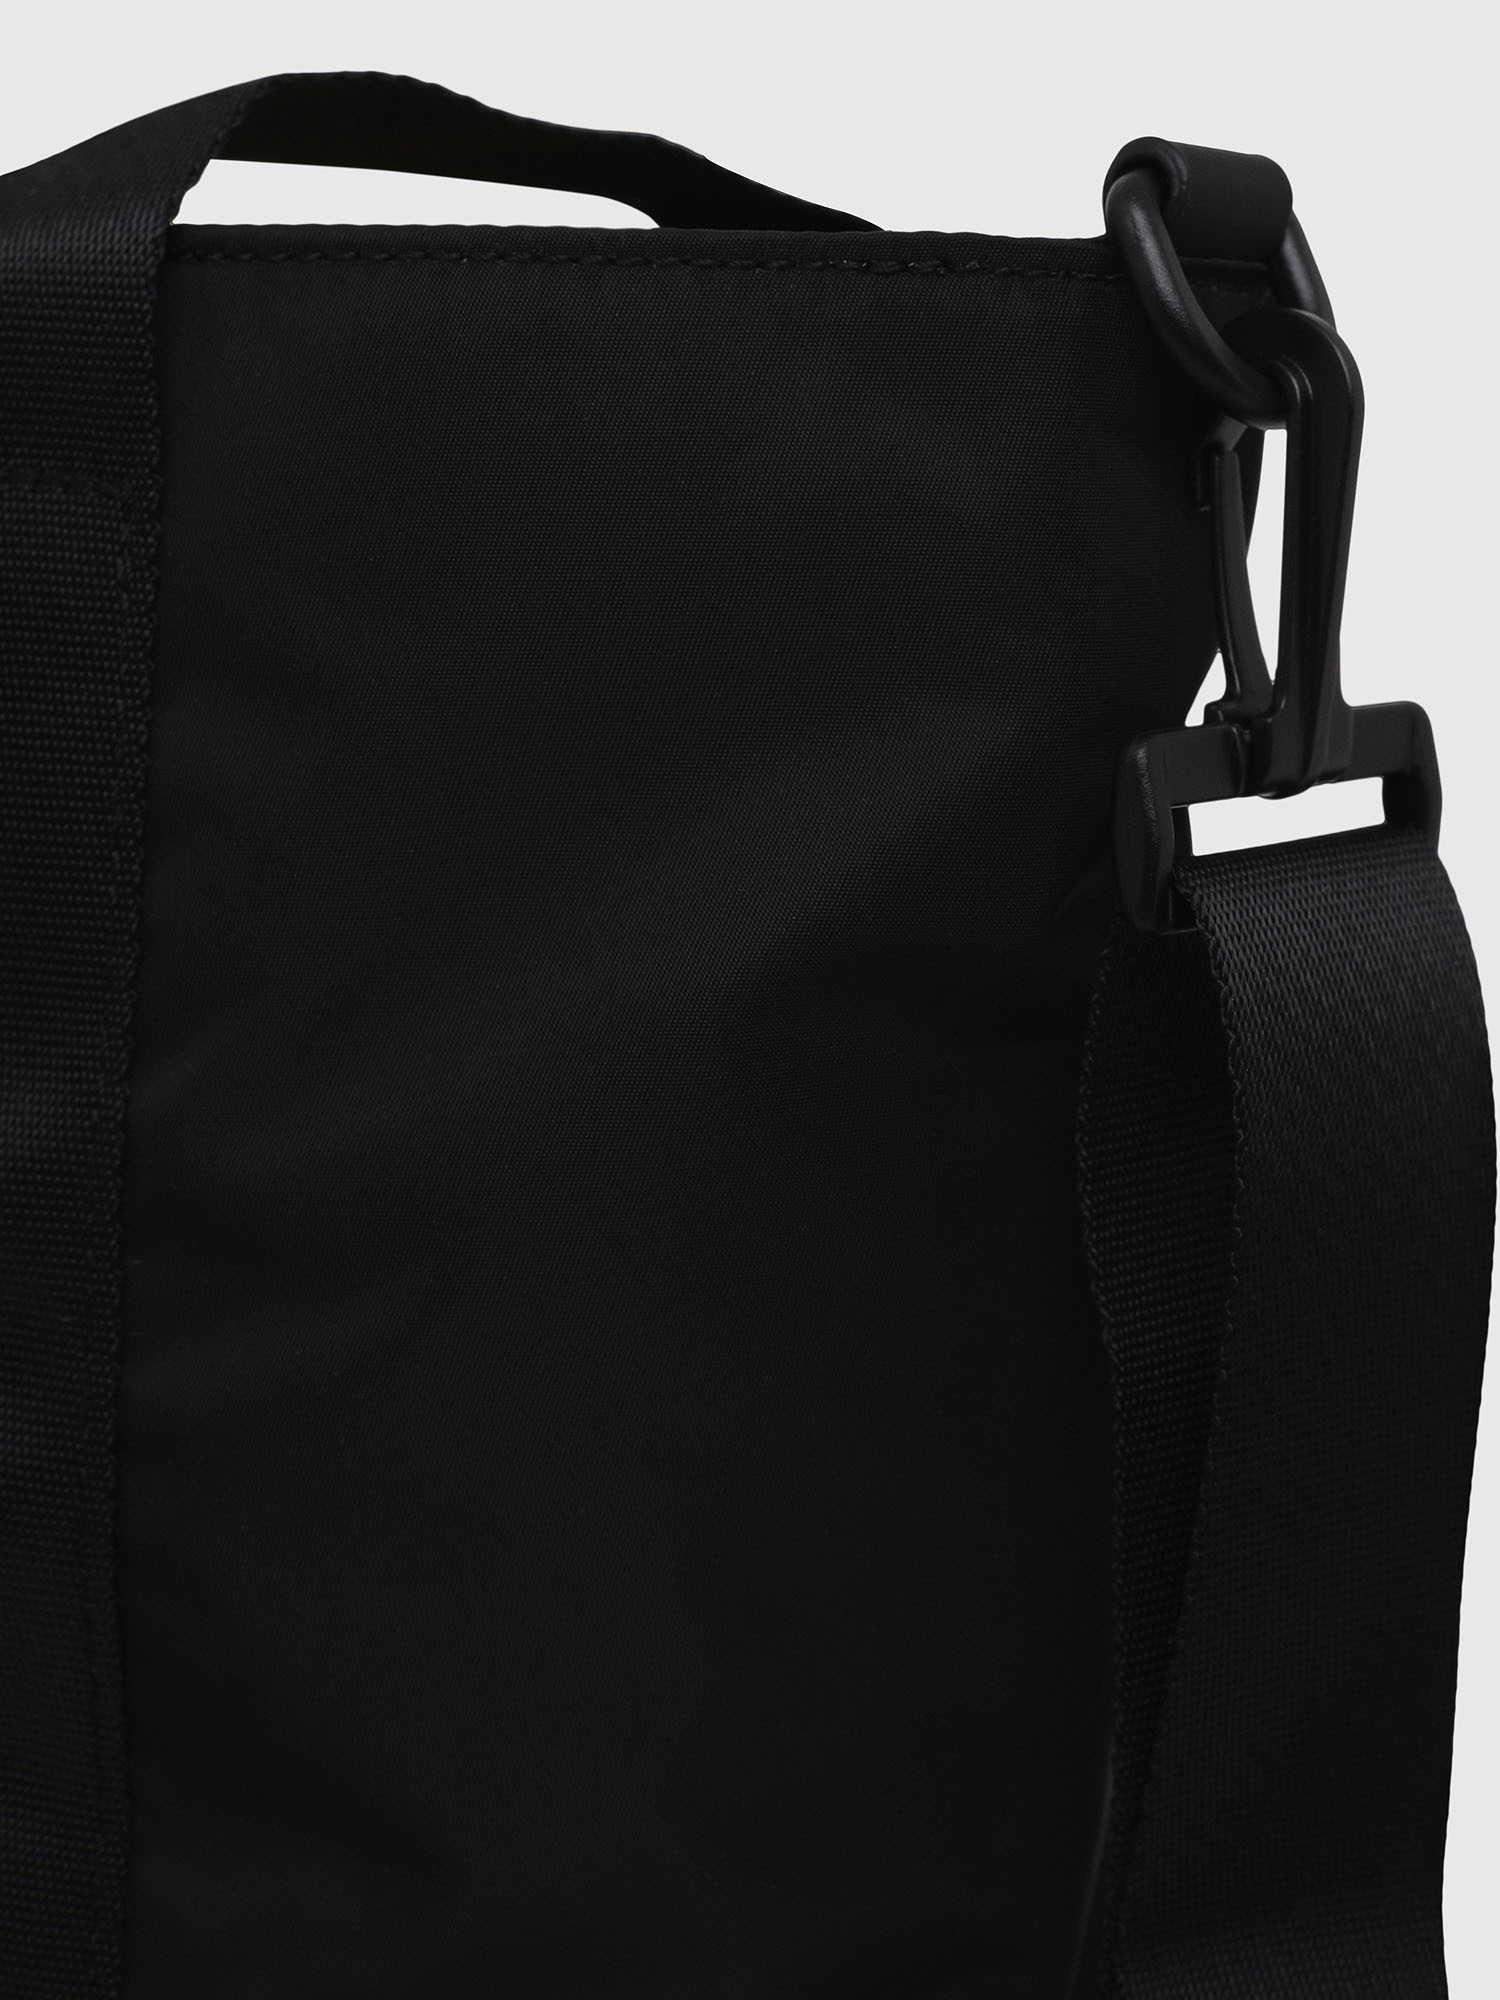 Diesel - F-SUSE T BACK W,  - Backpacks - Image 4